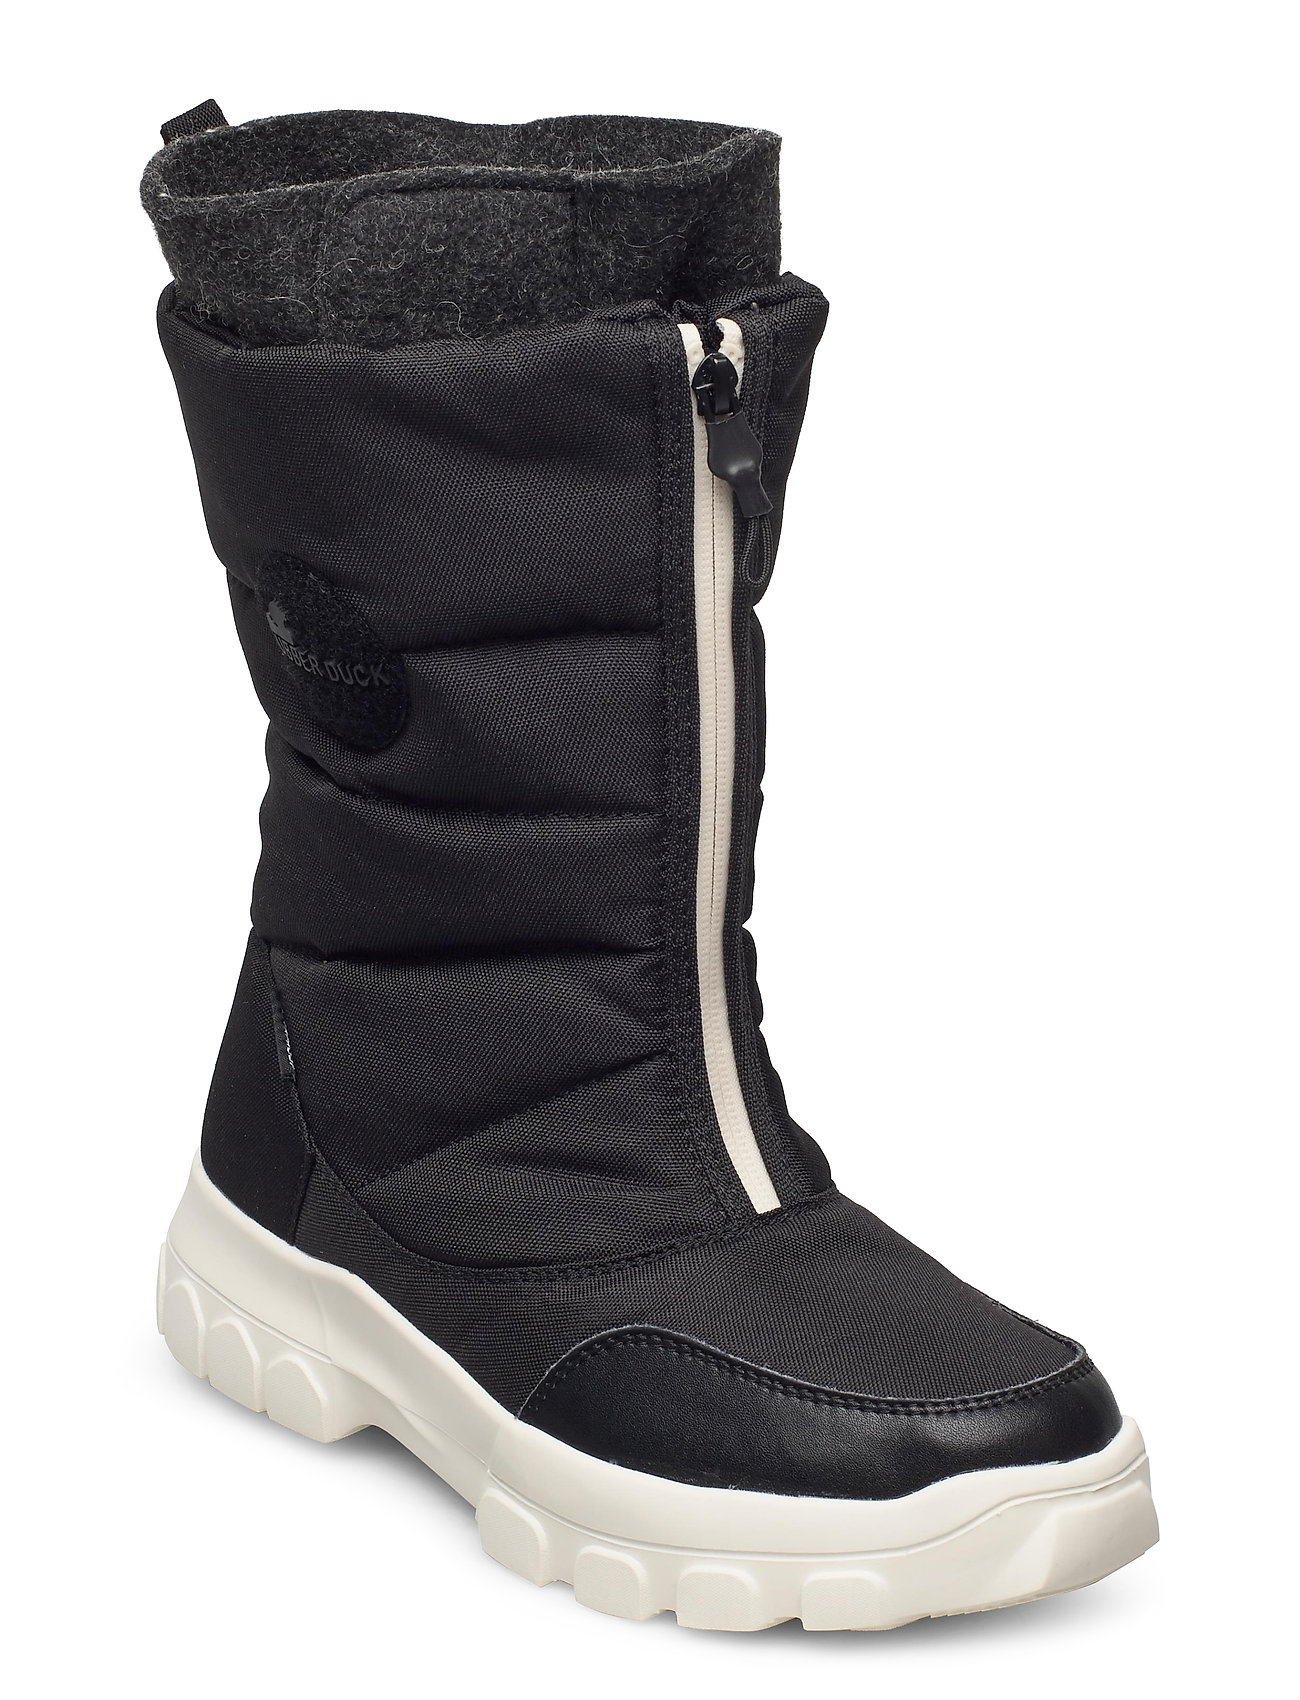 Image of Rd Aspen Hi Shoes Boots Ankle Boots Ankle Boot - Flat Sort Rubber Duck (3459219959)